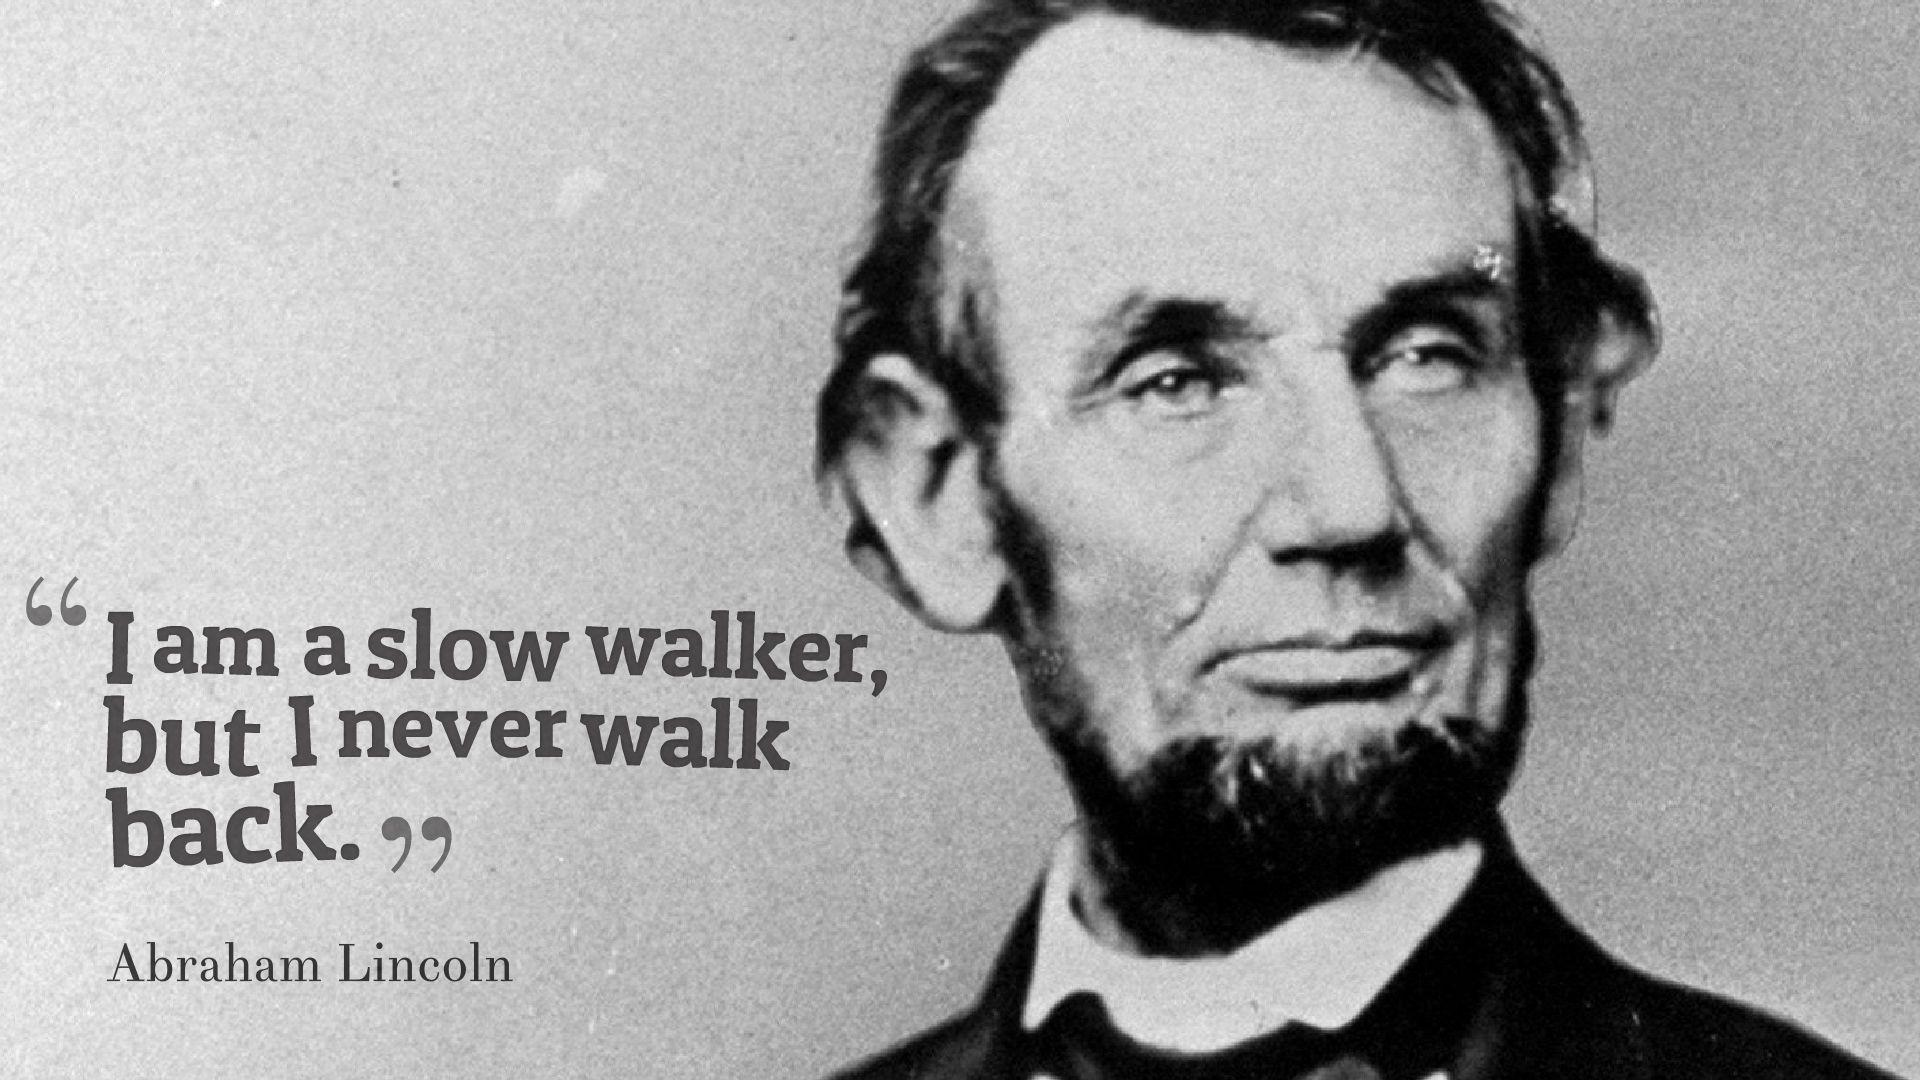 Abraham Lincoln Quotes Desktop Wallpaper 13772 - Baltana